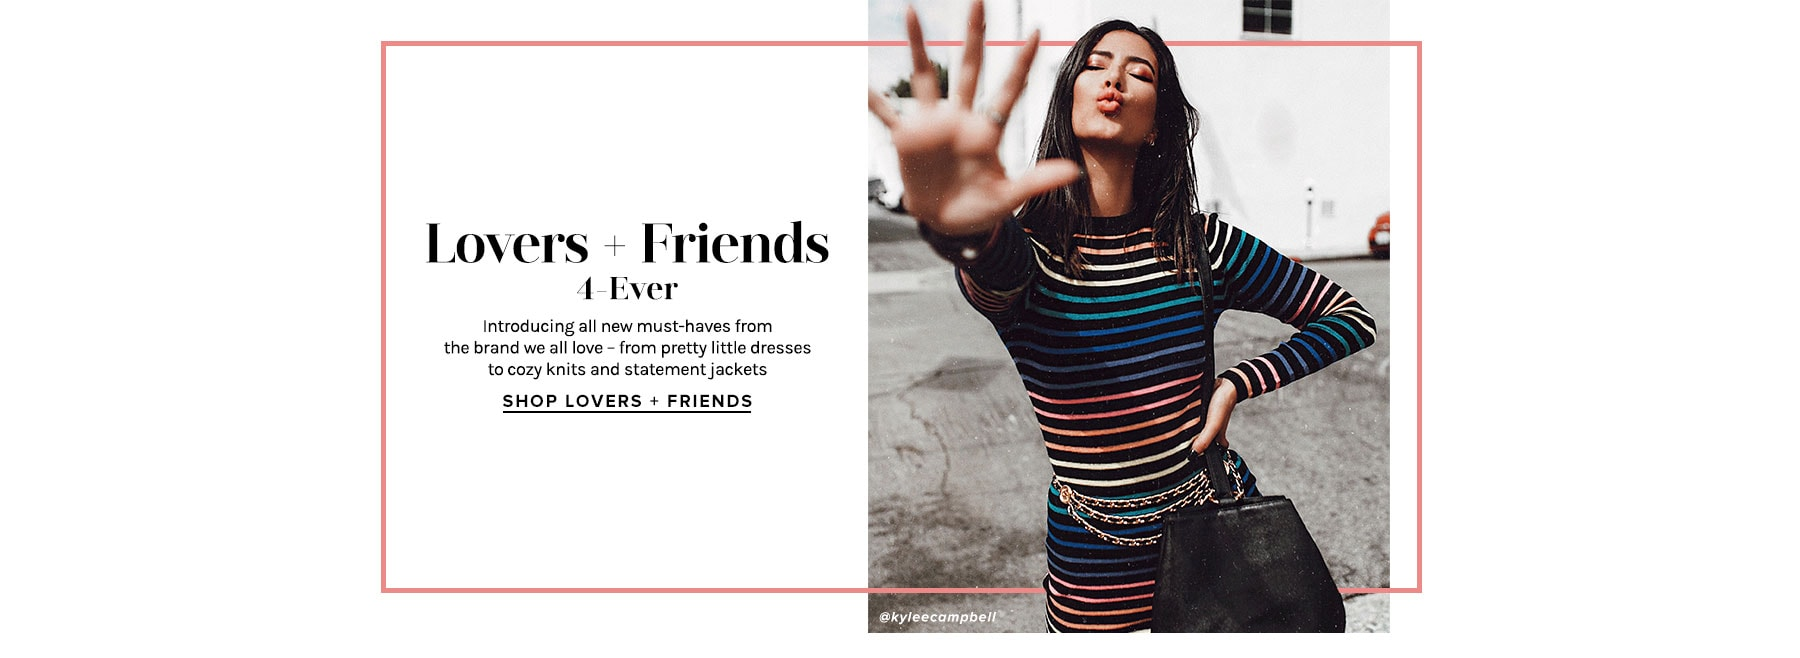 LOVERS + FRIENDS 4-EVER. Introducing all new must-haves from the brand we all love – from pretty little dresses to cozy knits and statement jackets. Shop Lovers + Friends.